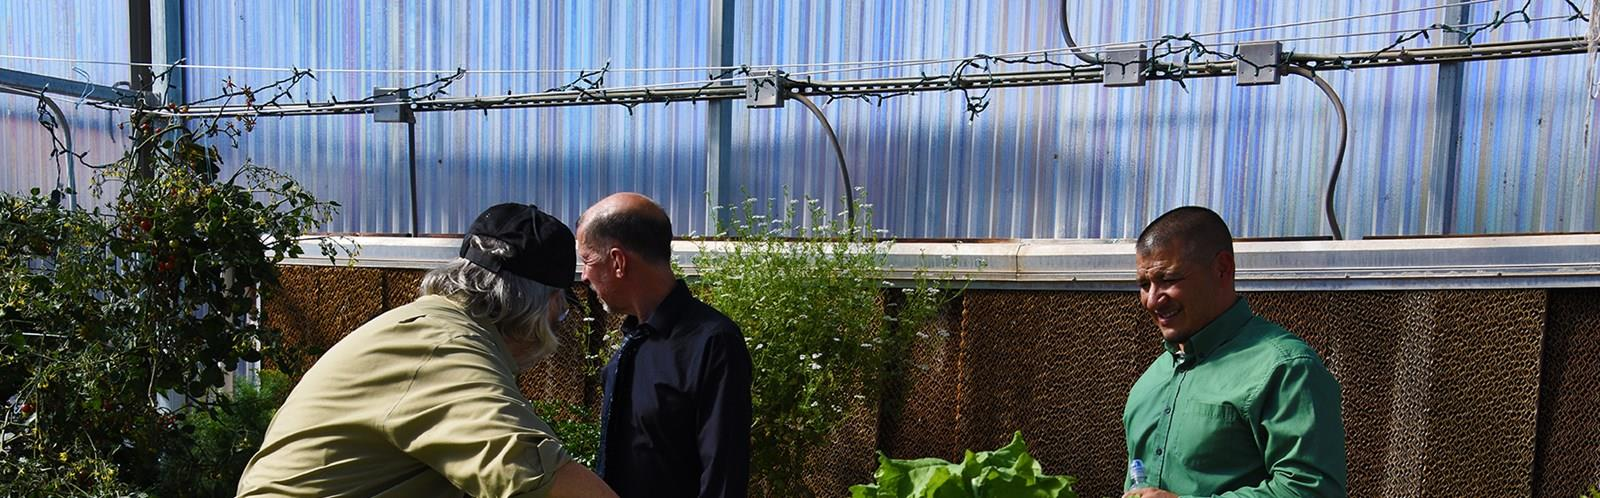 Our greenhouse offers many learning opportunities